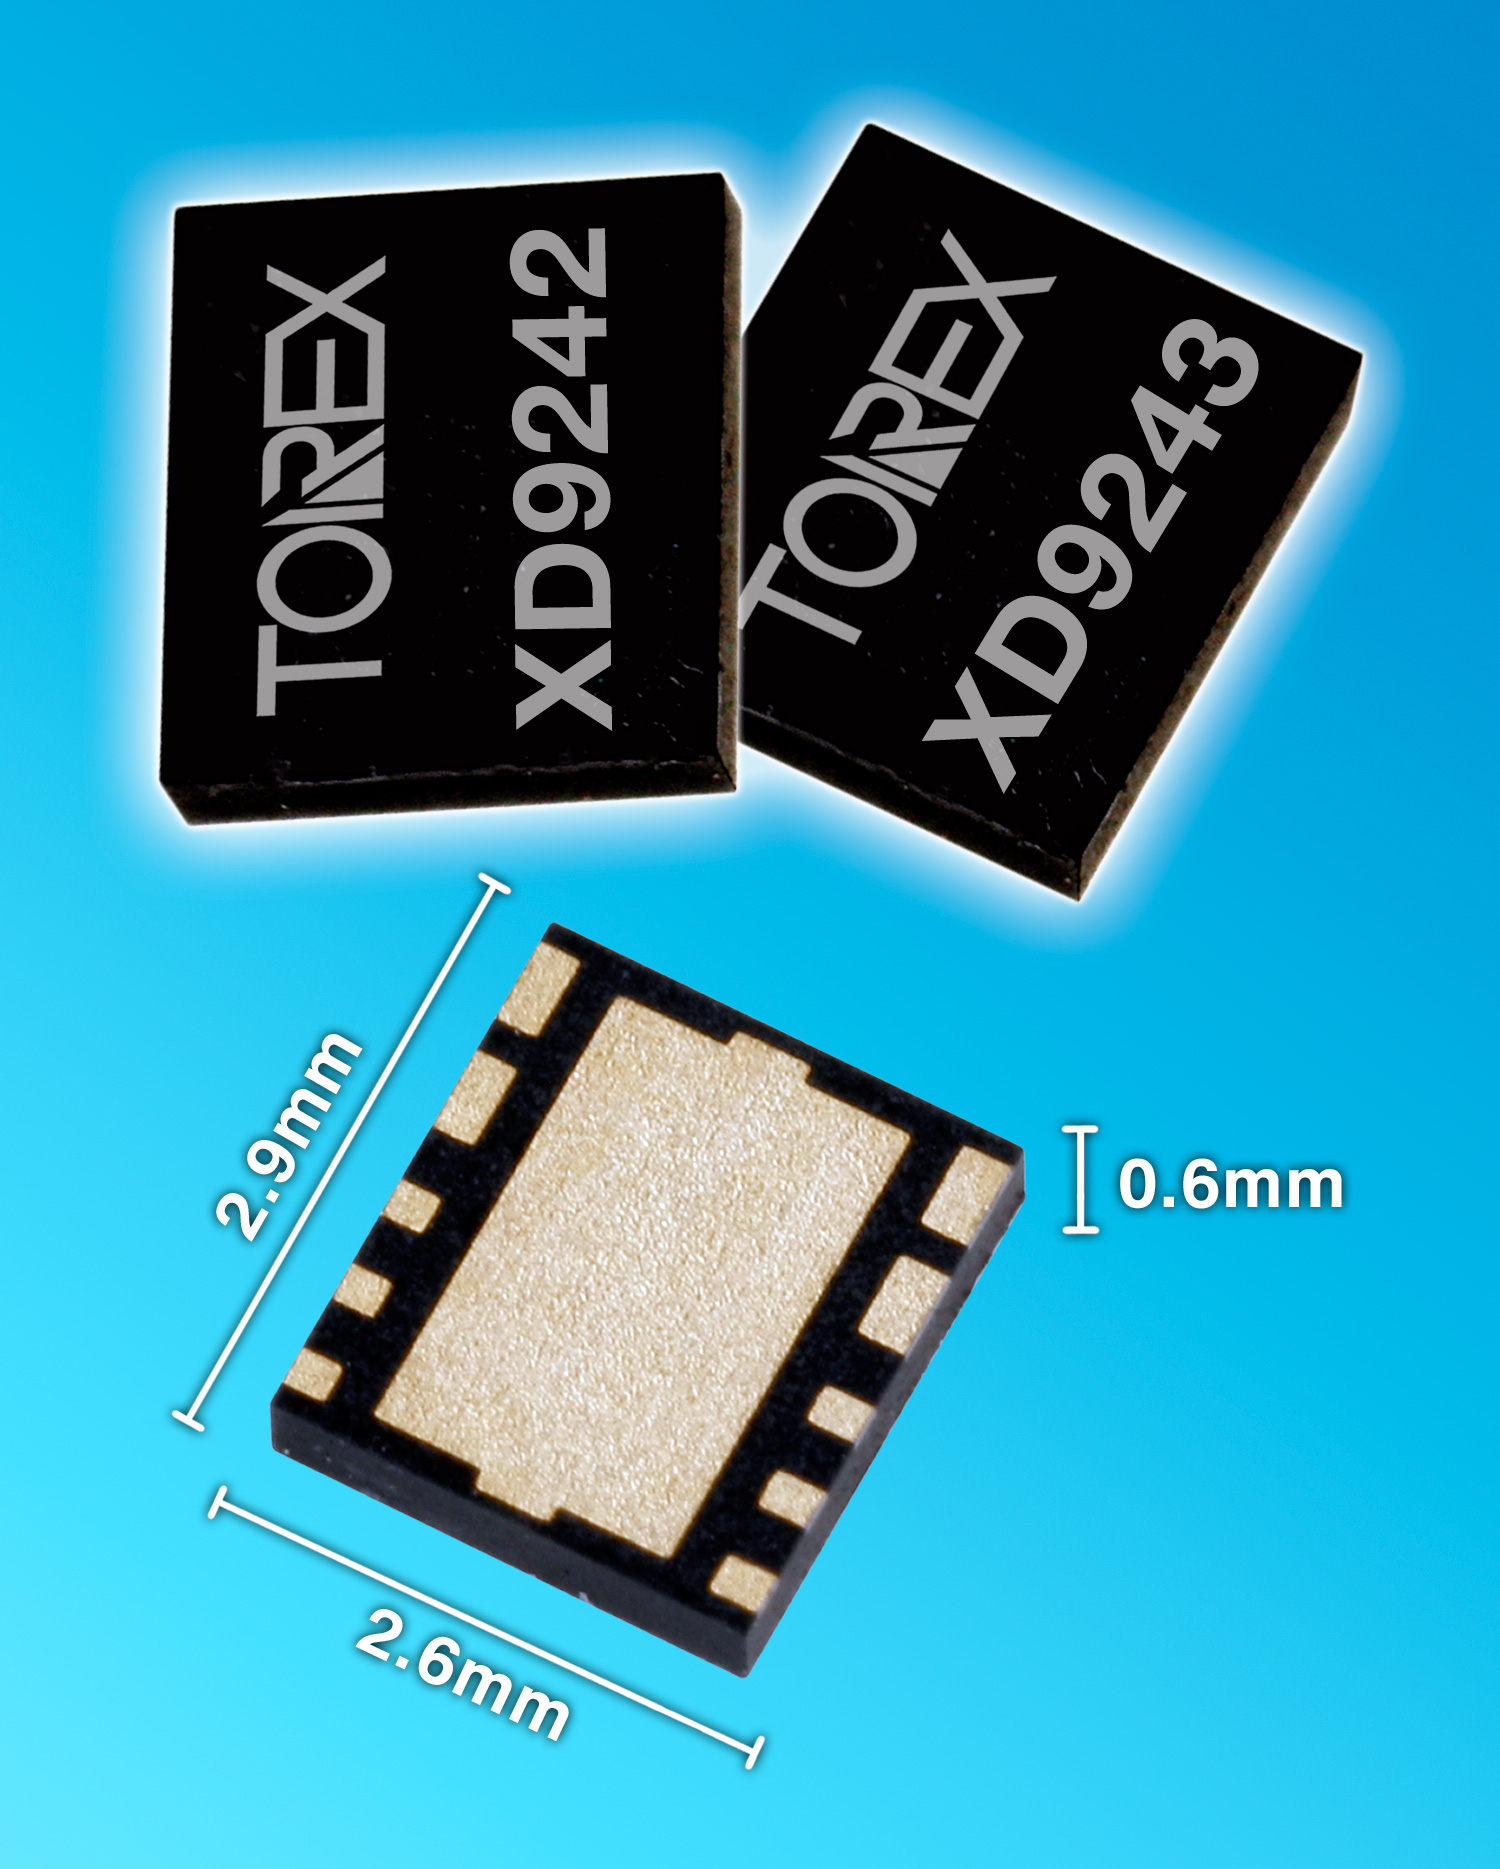 Three AEC-Q100 devices for automotive applications - Power Electronic Tips